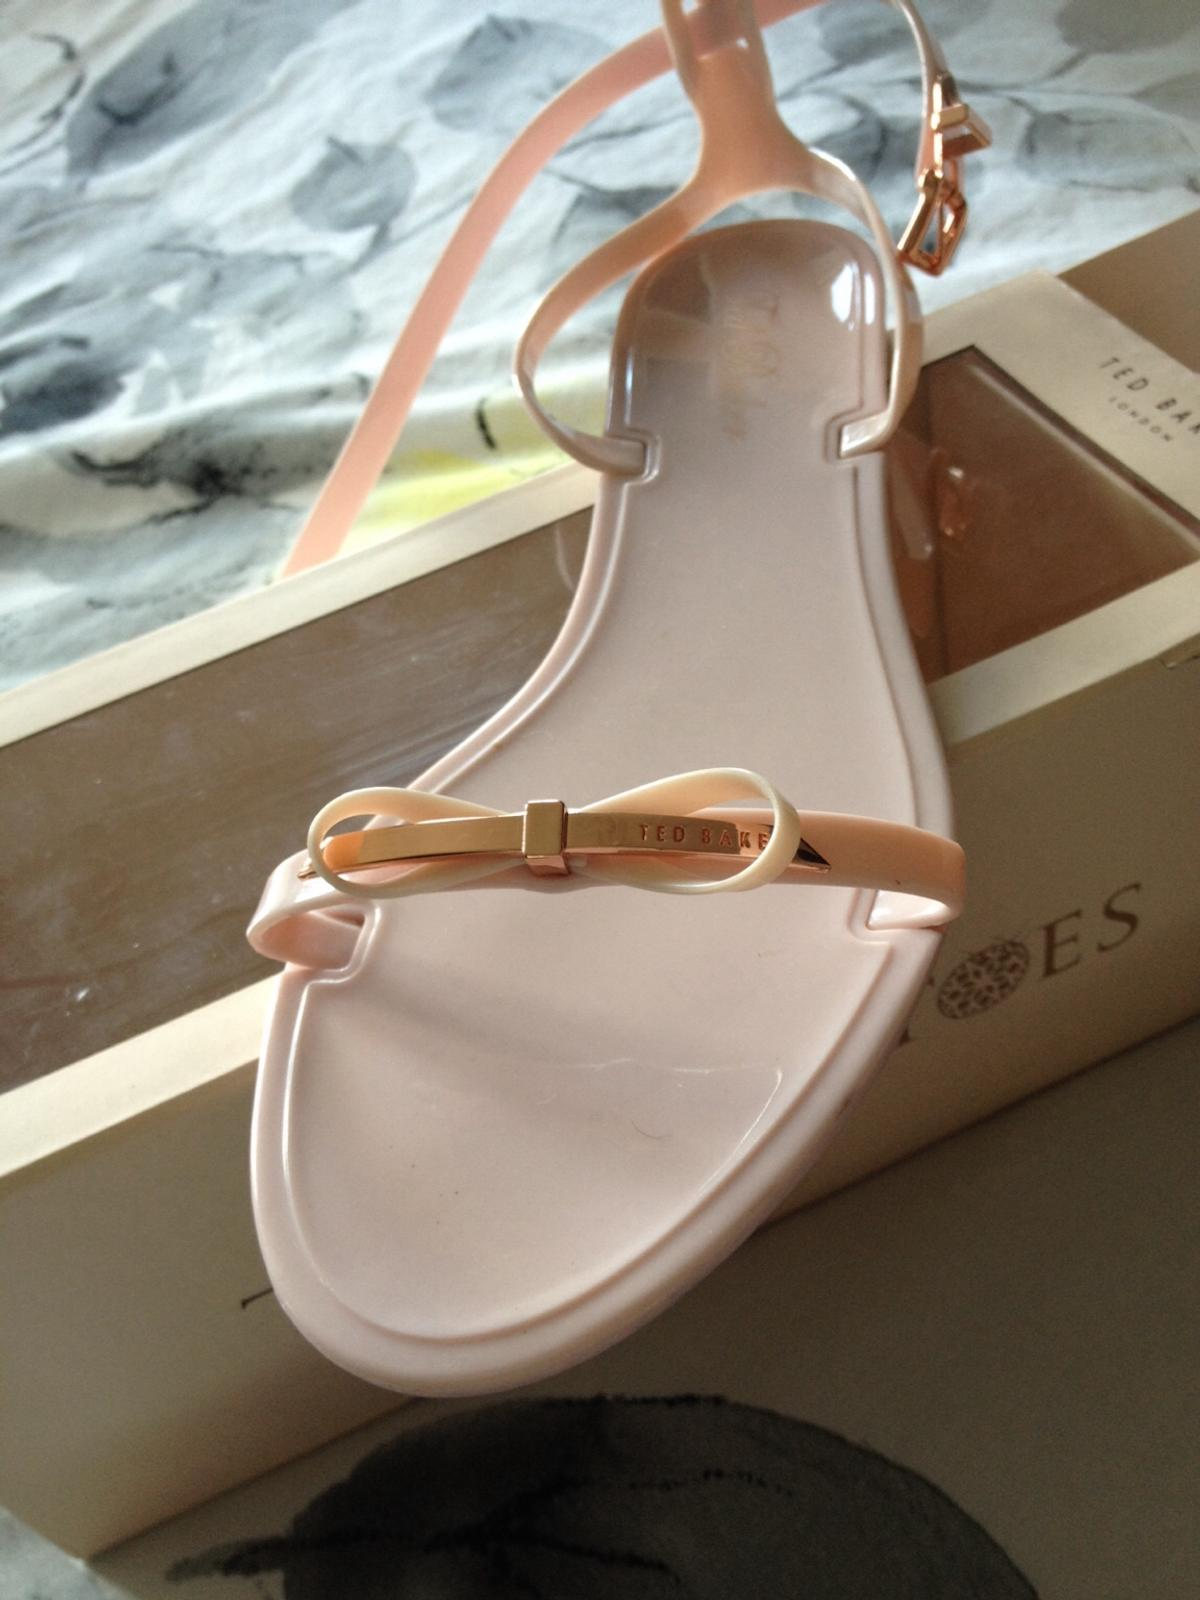 cc1656e2a Ted baker sandals size 7 in WV14 Wolverhampton for £20.00 for sale ...